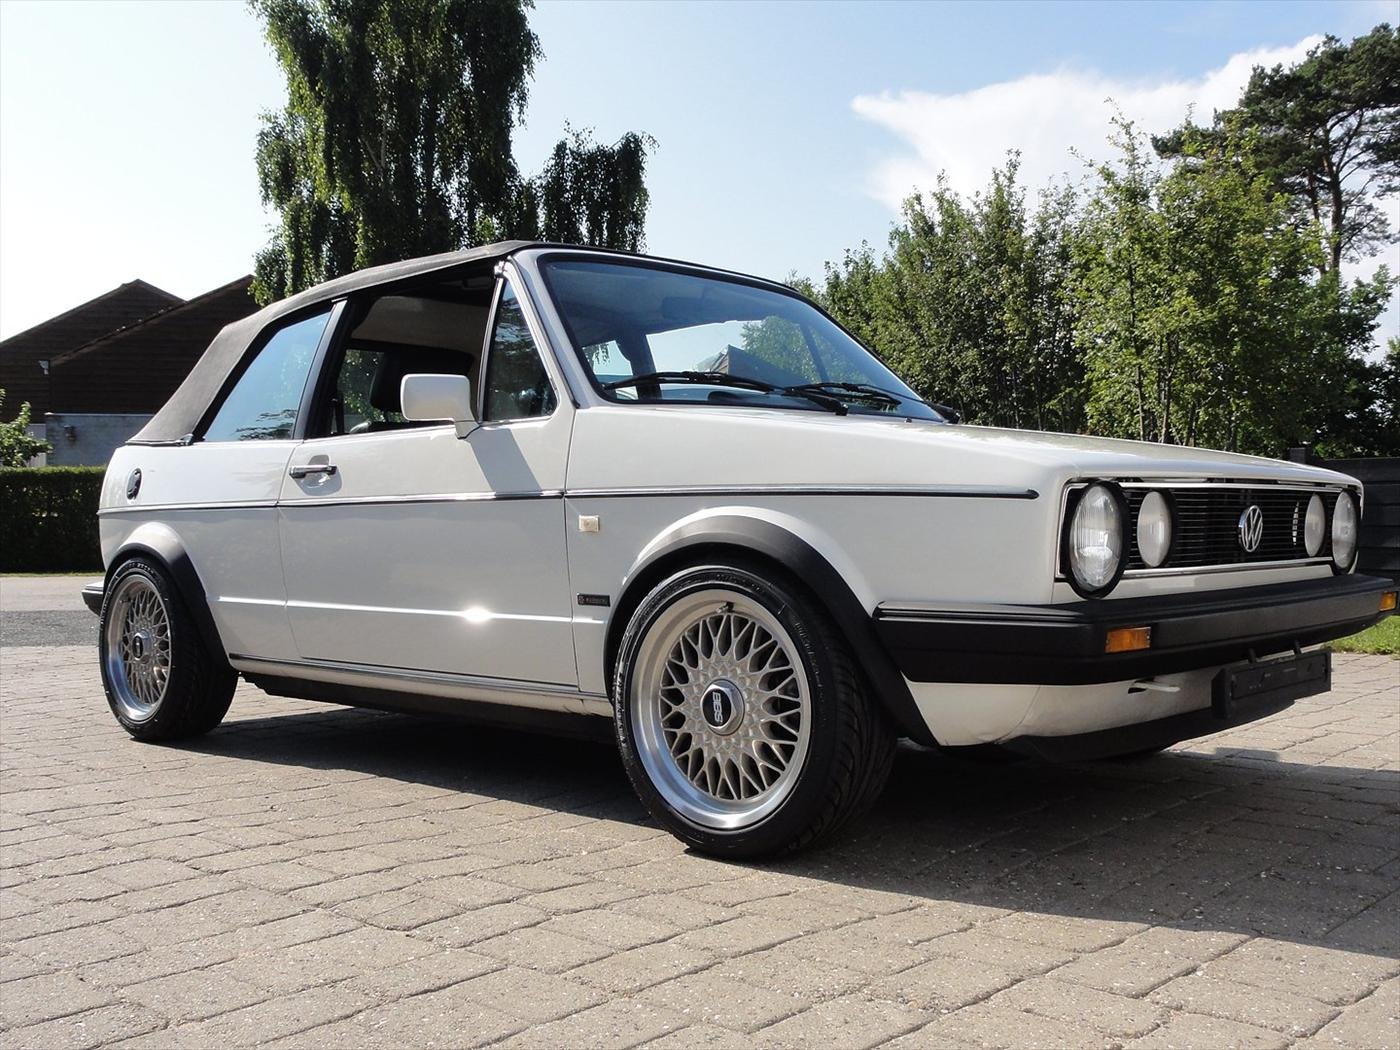 vw golf 1 cabriolet karmann 1986 billeder af biler. Black Bedroom Furniture Sets. Home Design Ideas